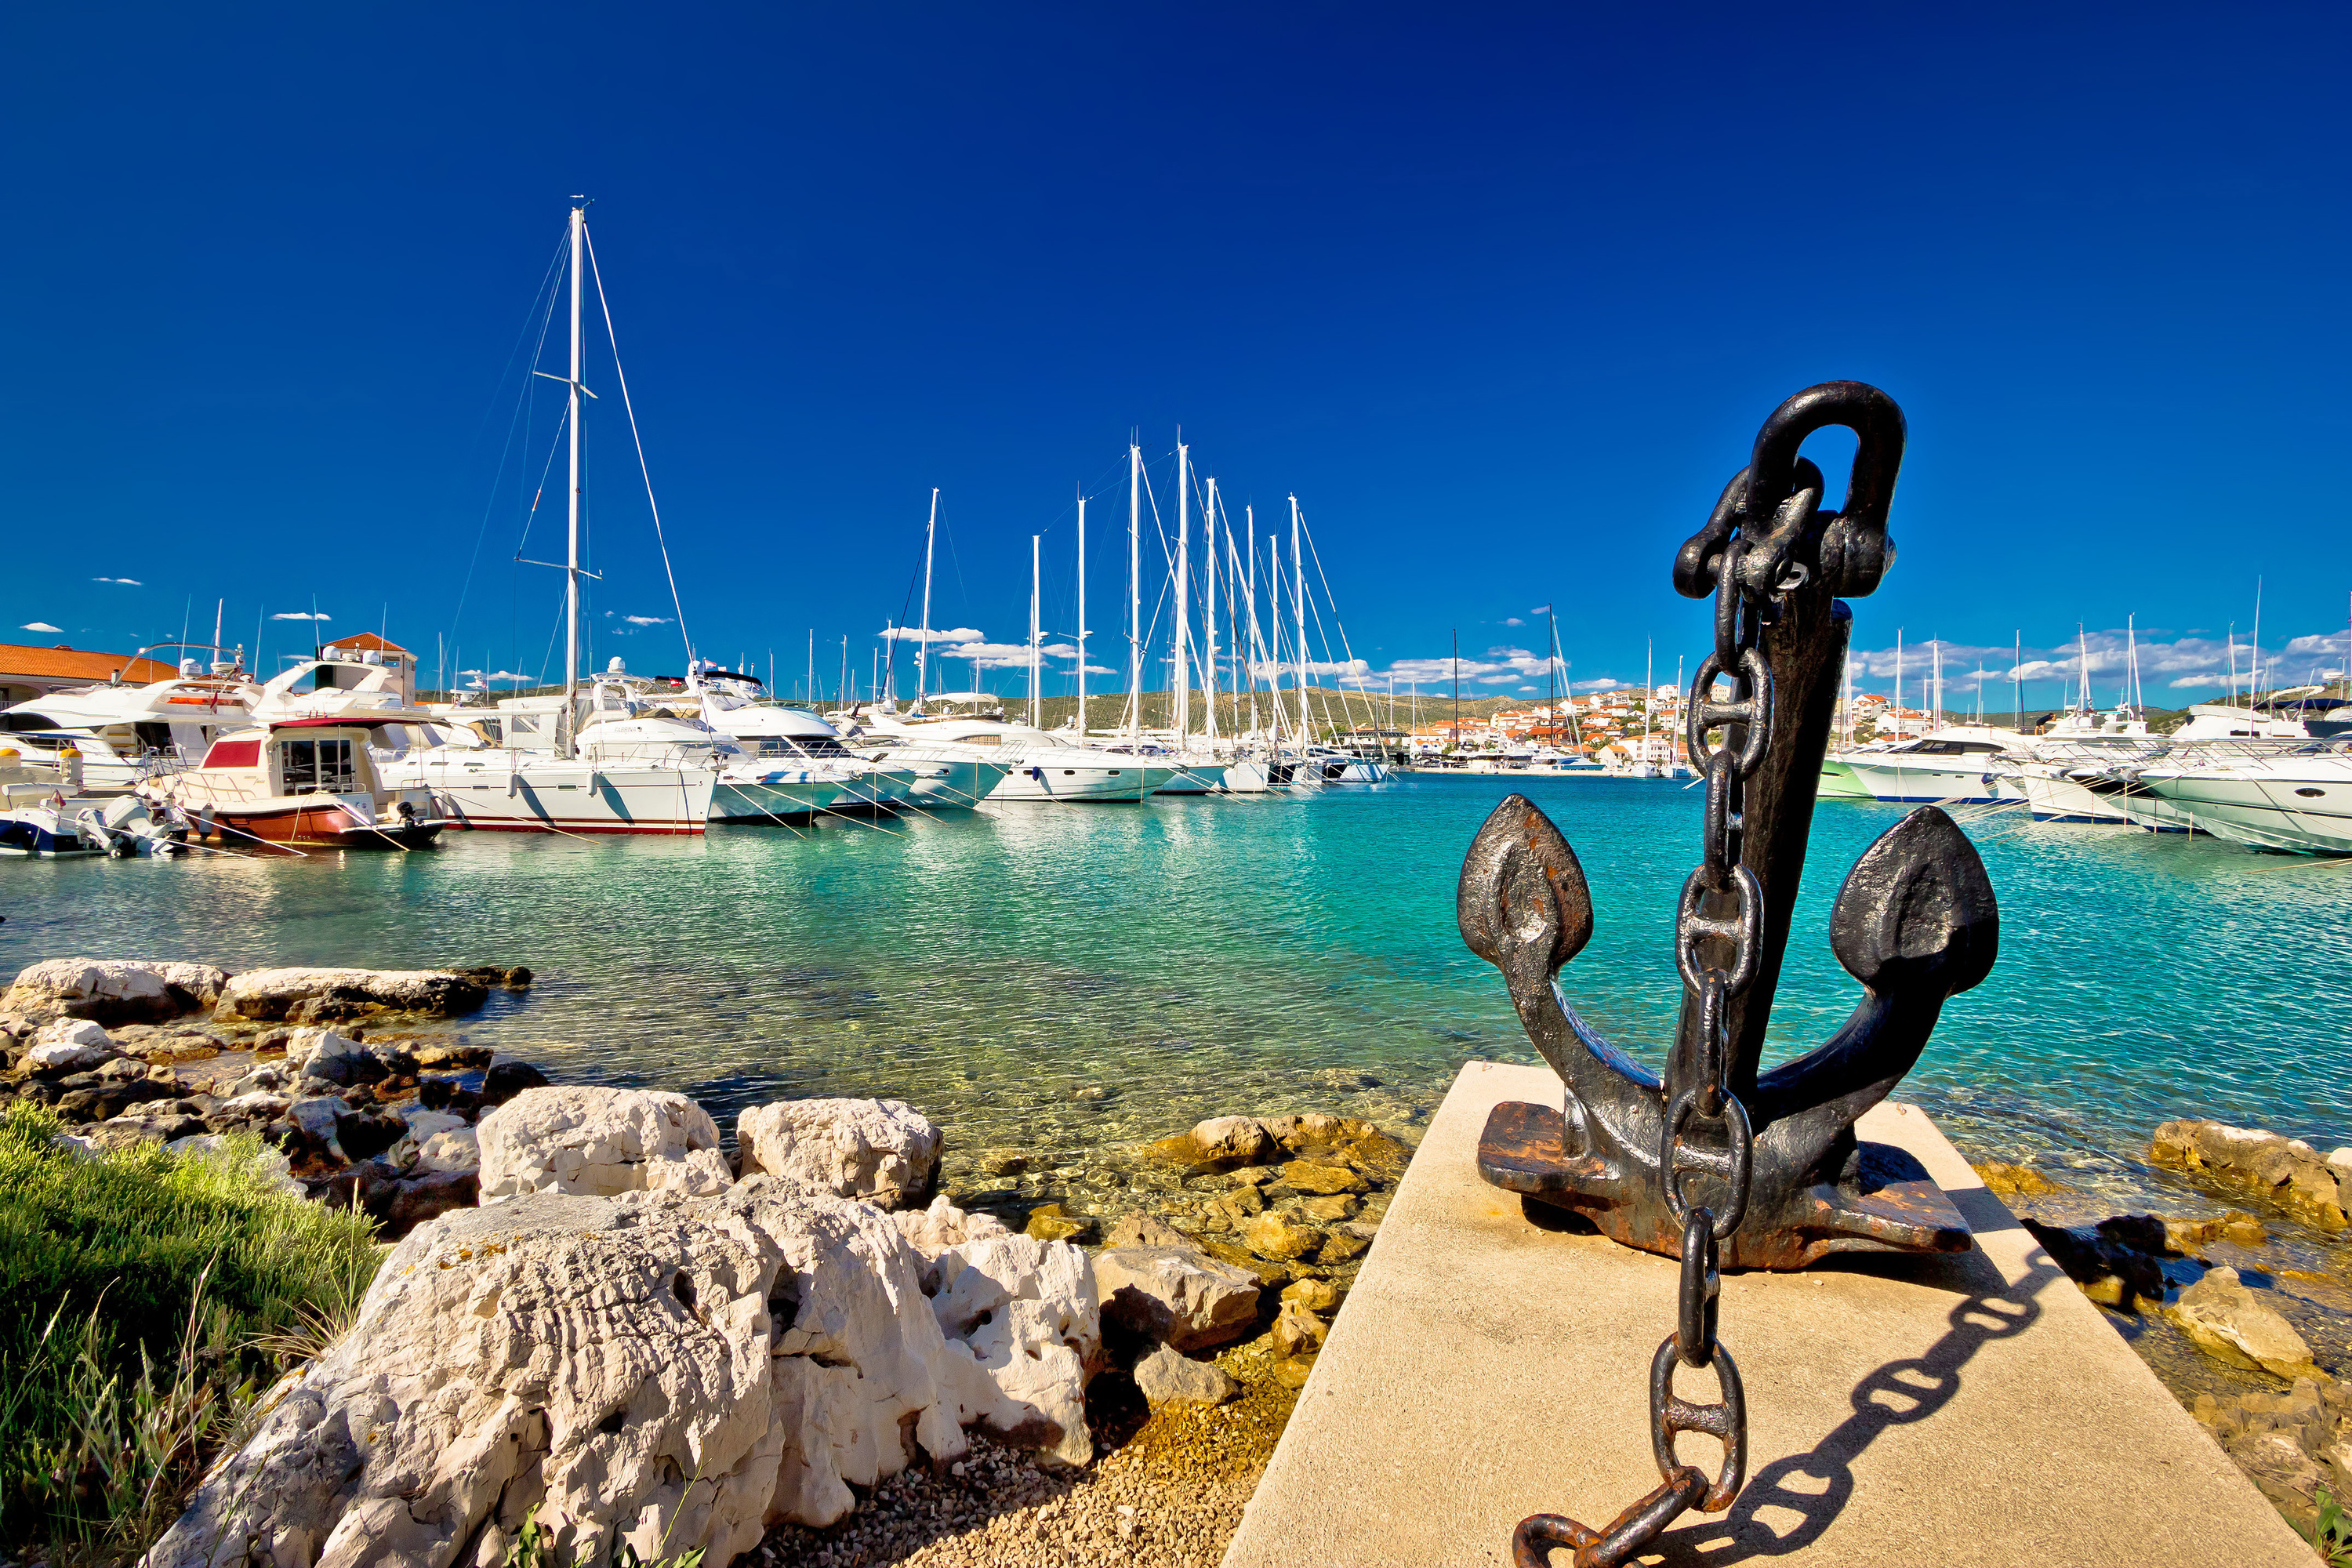 Why Croatia is the hottest destination for sailing in 2019